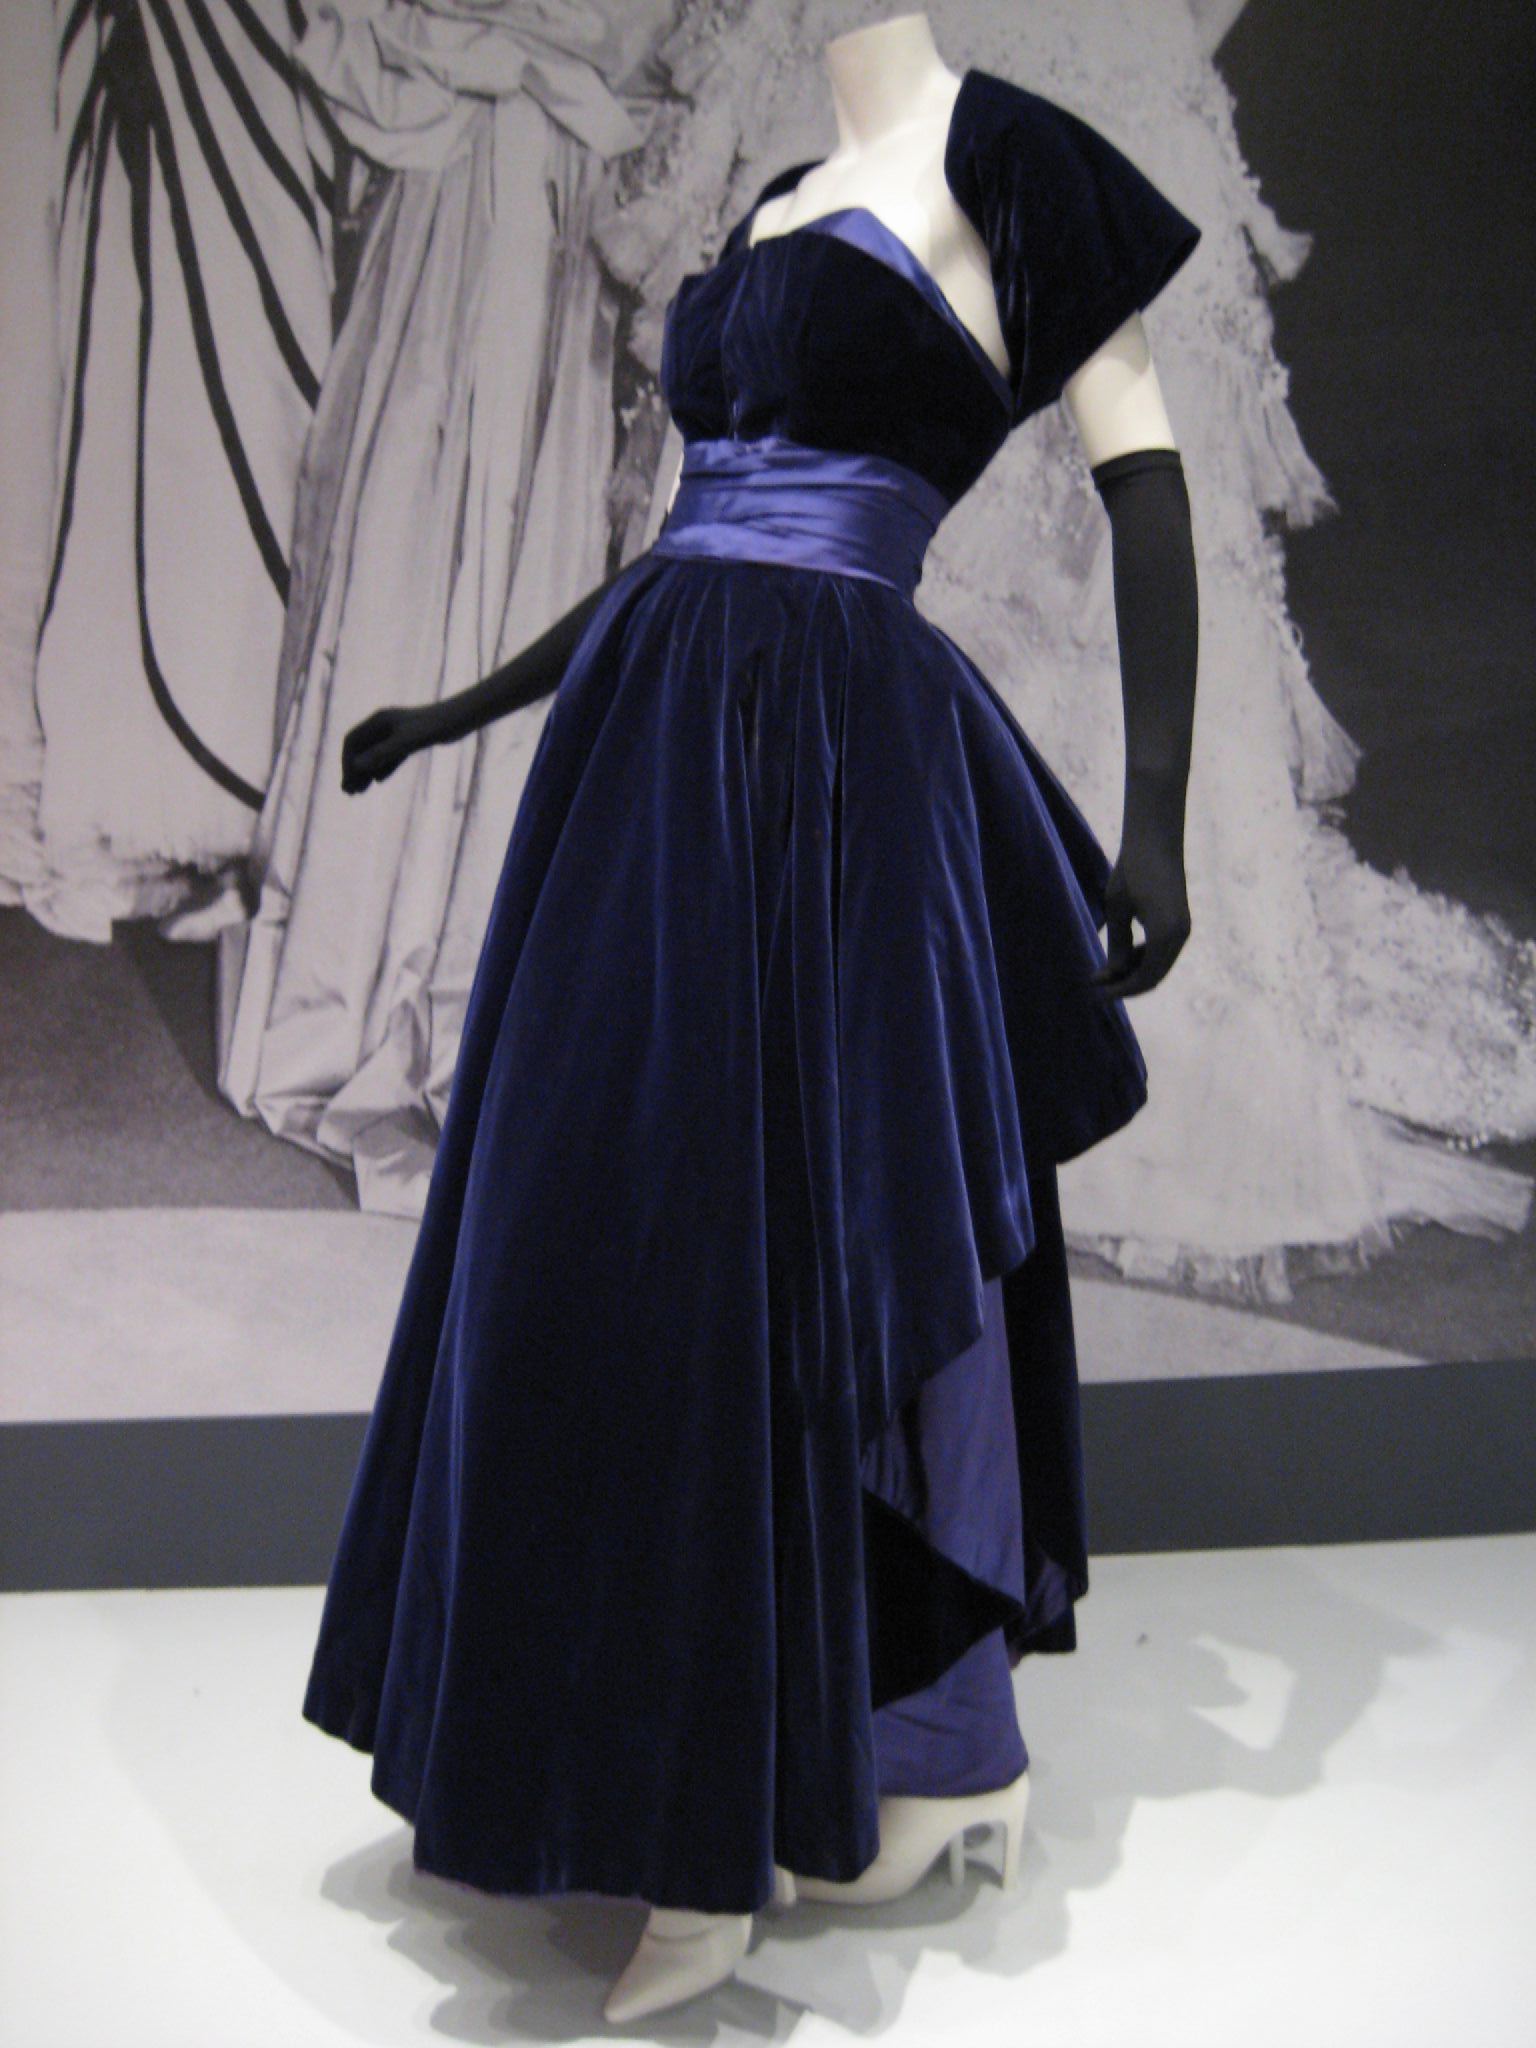 http://upload.wikimedia.org/wikipedia/commons/1/18/Christian_Dior_Dress_indianapolis.jpg